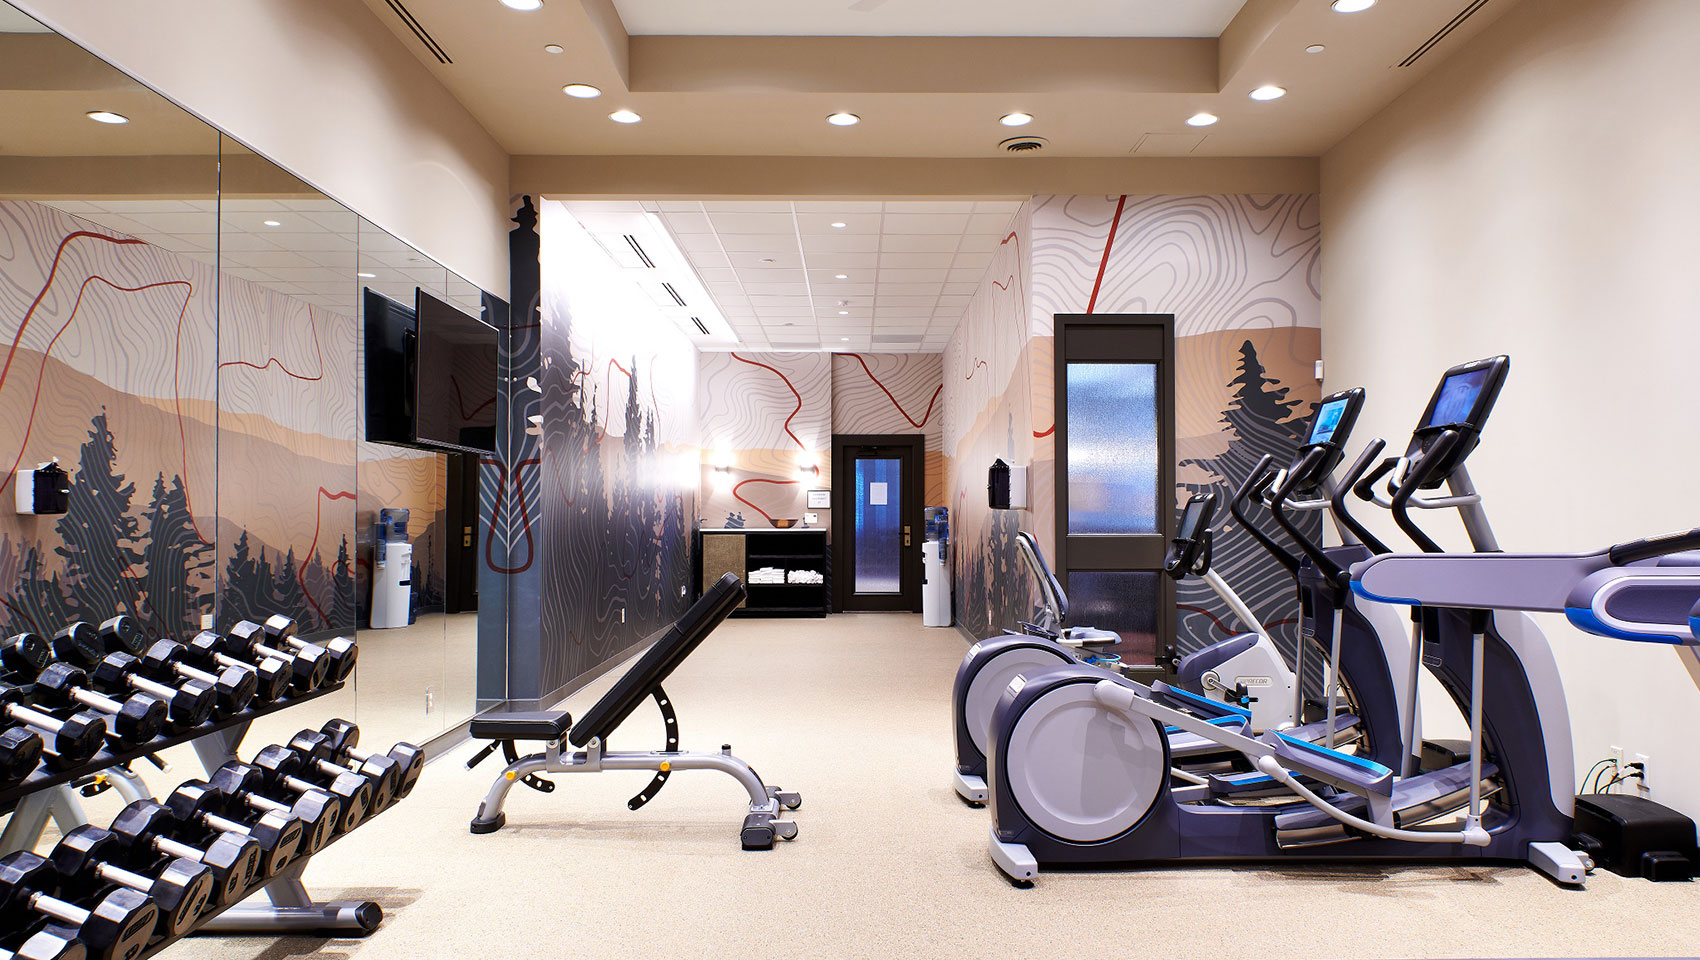 Kimpton RiverPlace Fitness Center